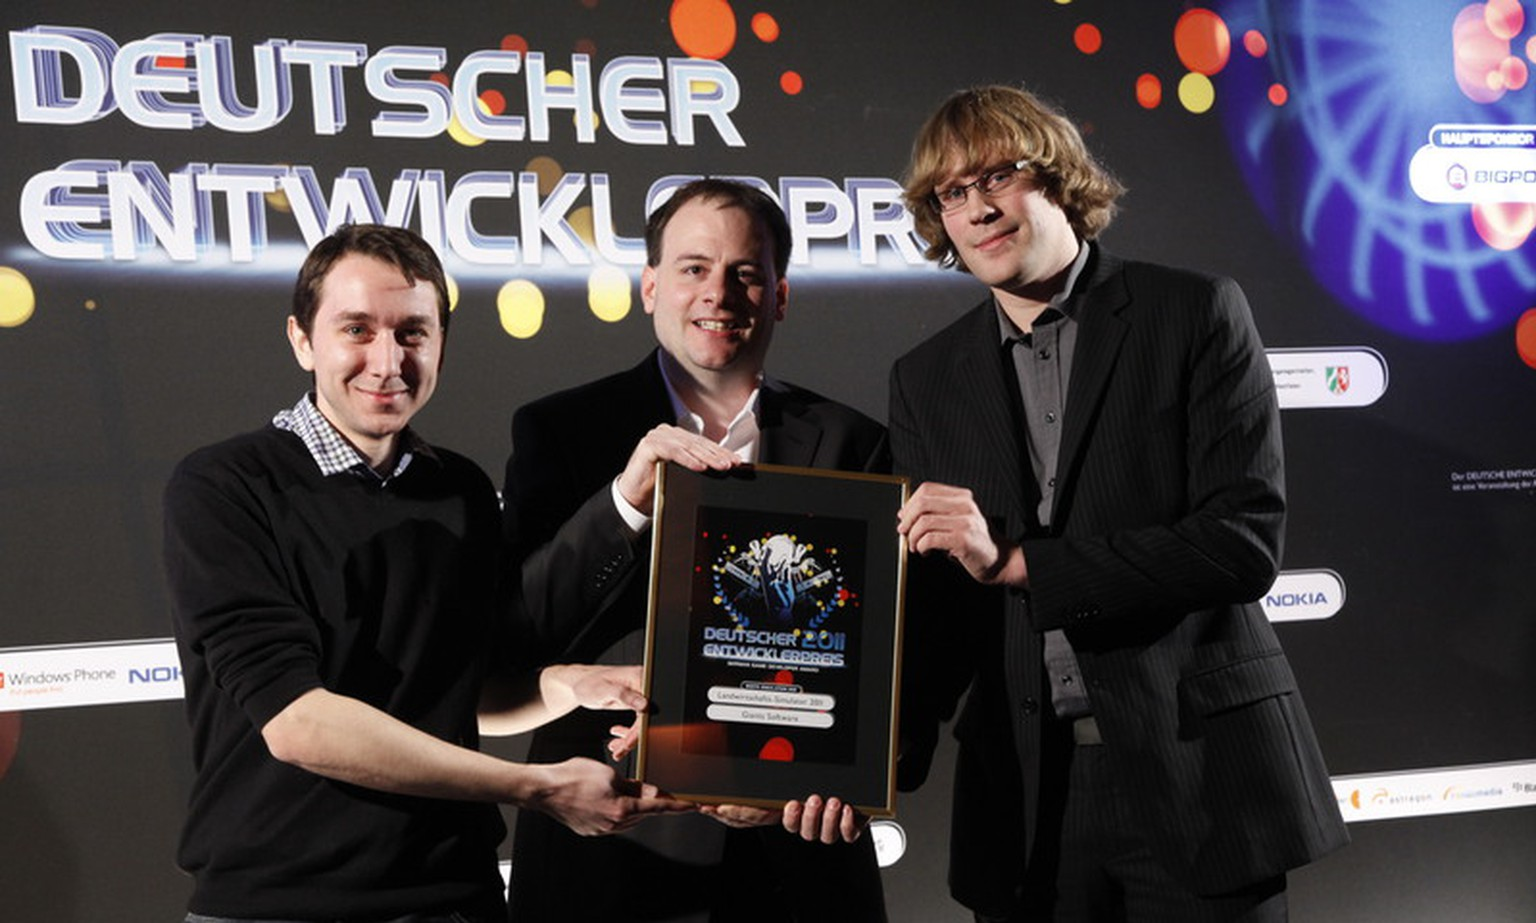 giants software v.l.: Lead Artist Thomas Frey, CEO Christian Ammann, Lead Programmer Stefan Geiger